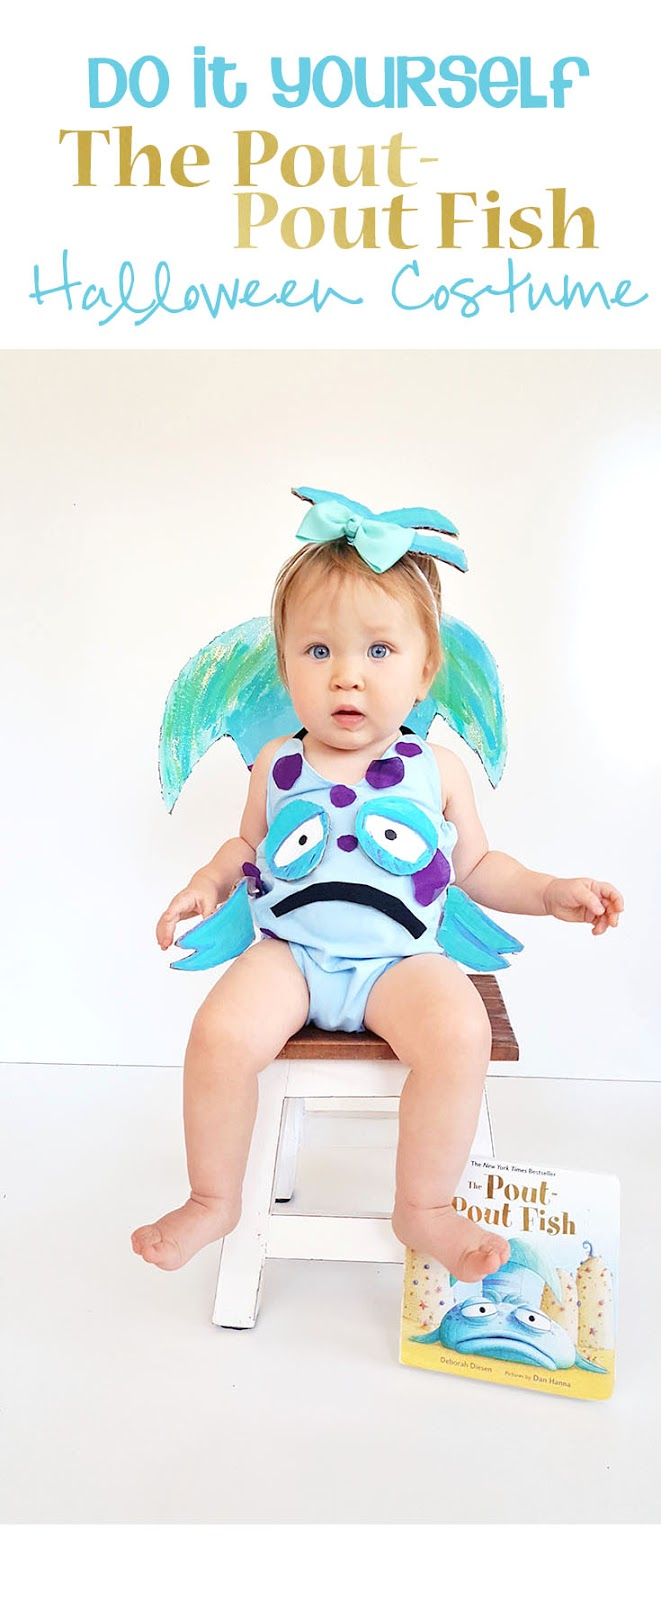 Diy the pout pout fish baby halloween costume inspired by the this little costume will leave your little pout pout fish feeling smooch worthy and solutioingenieria